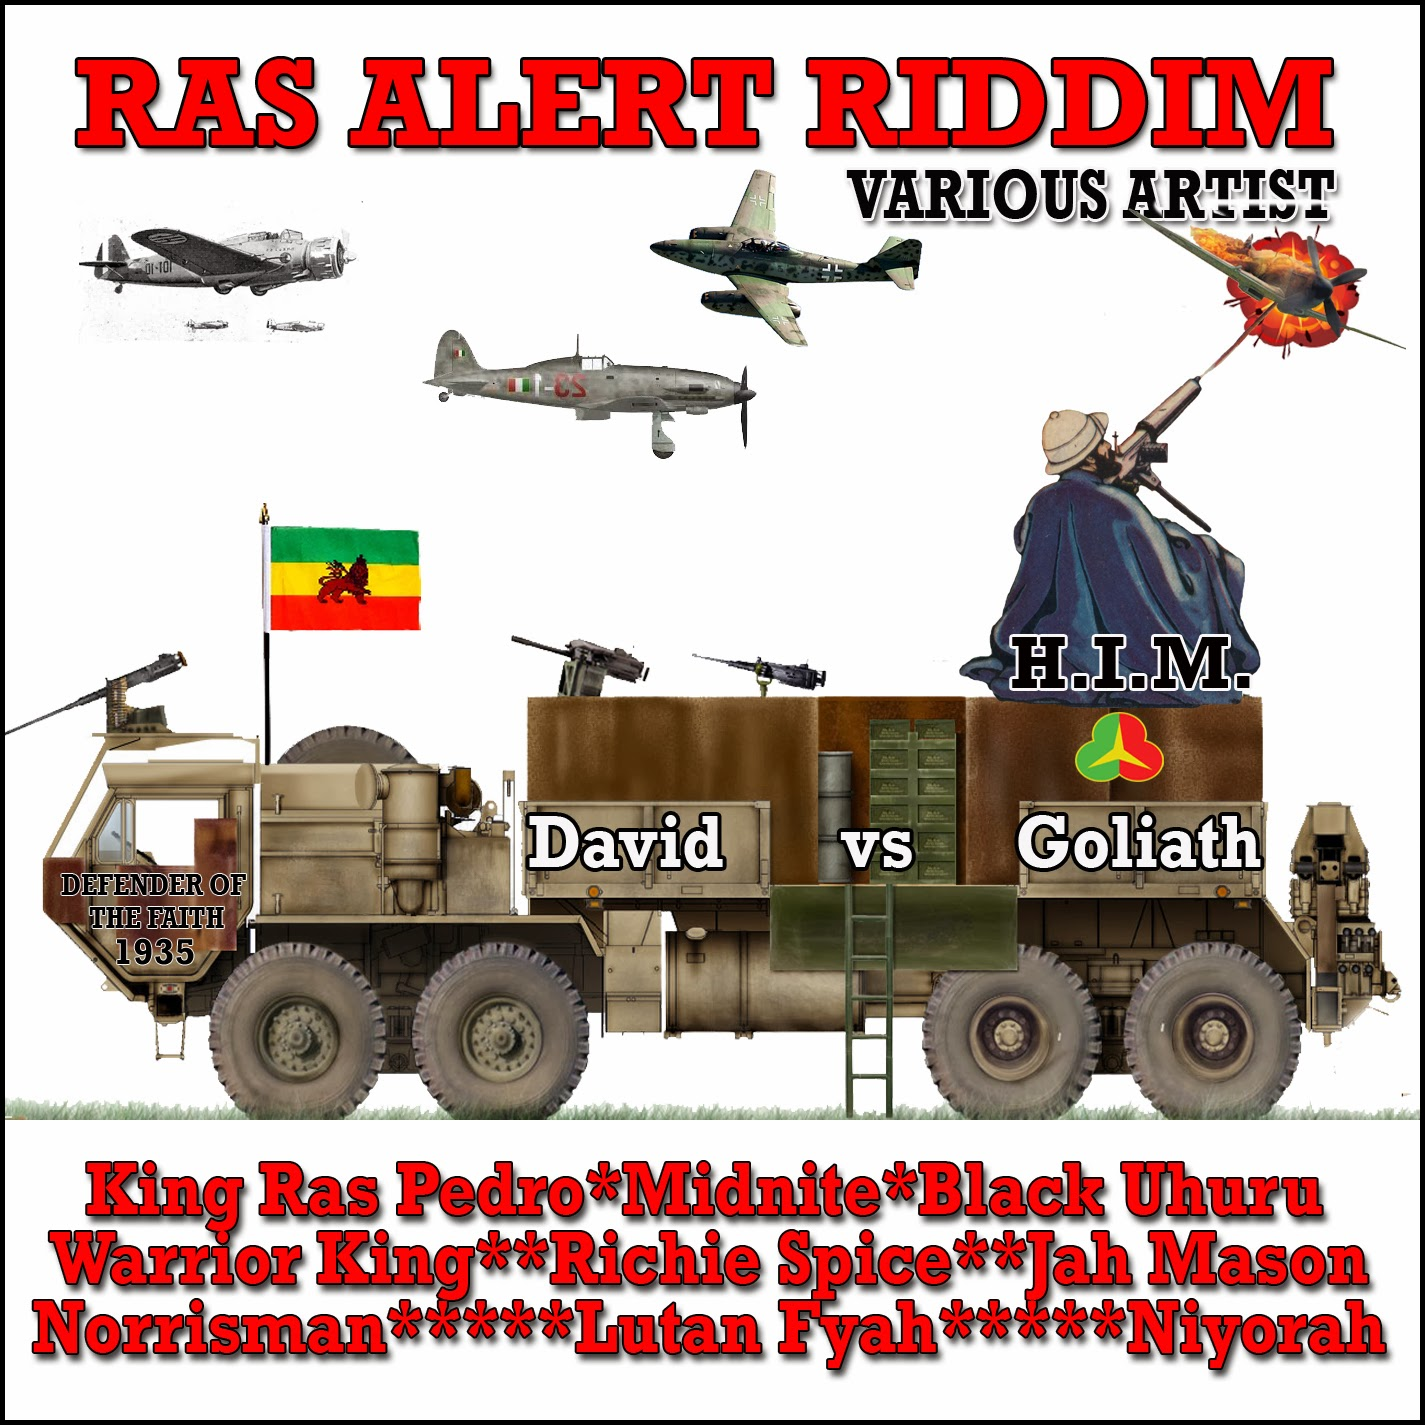 RAS ALERT RIDDIM MIX 2013 BY @FYAHMUSIC @SELECTARICKY.mp3 #RASALERTRIDDIM